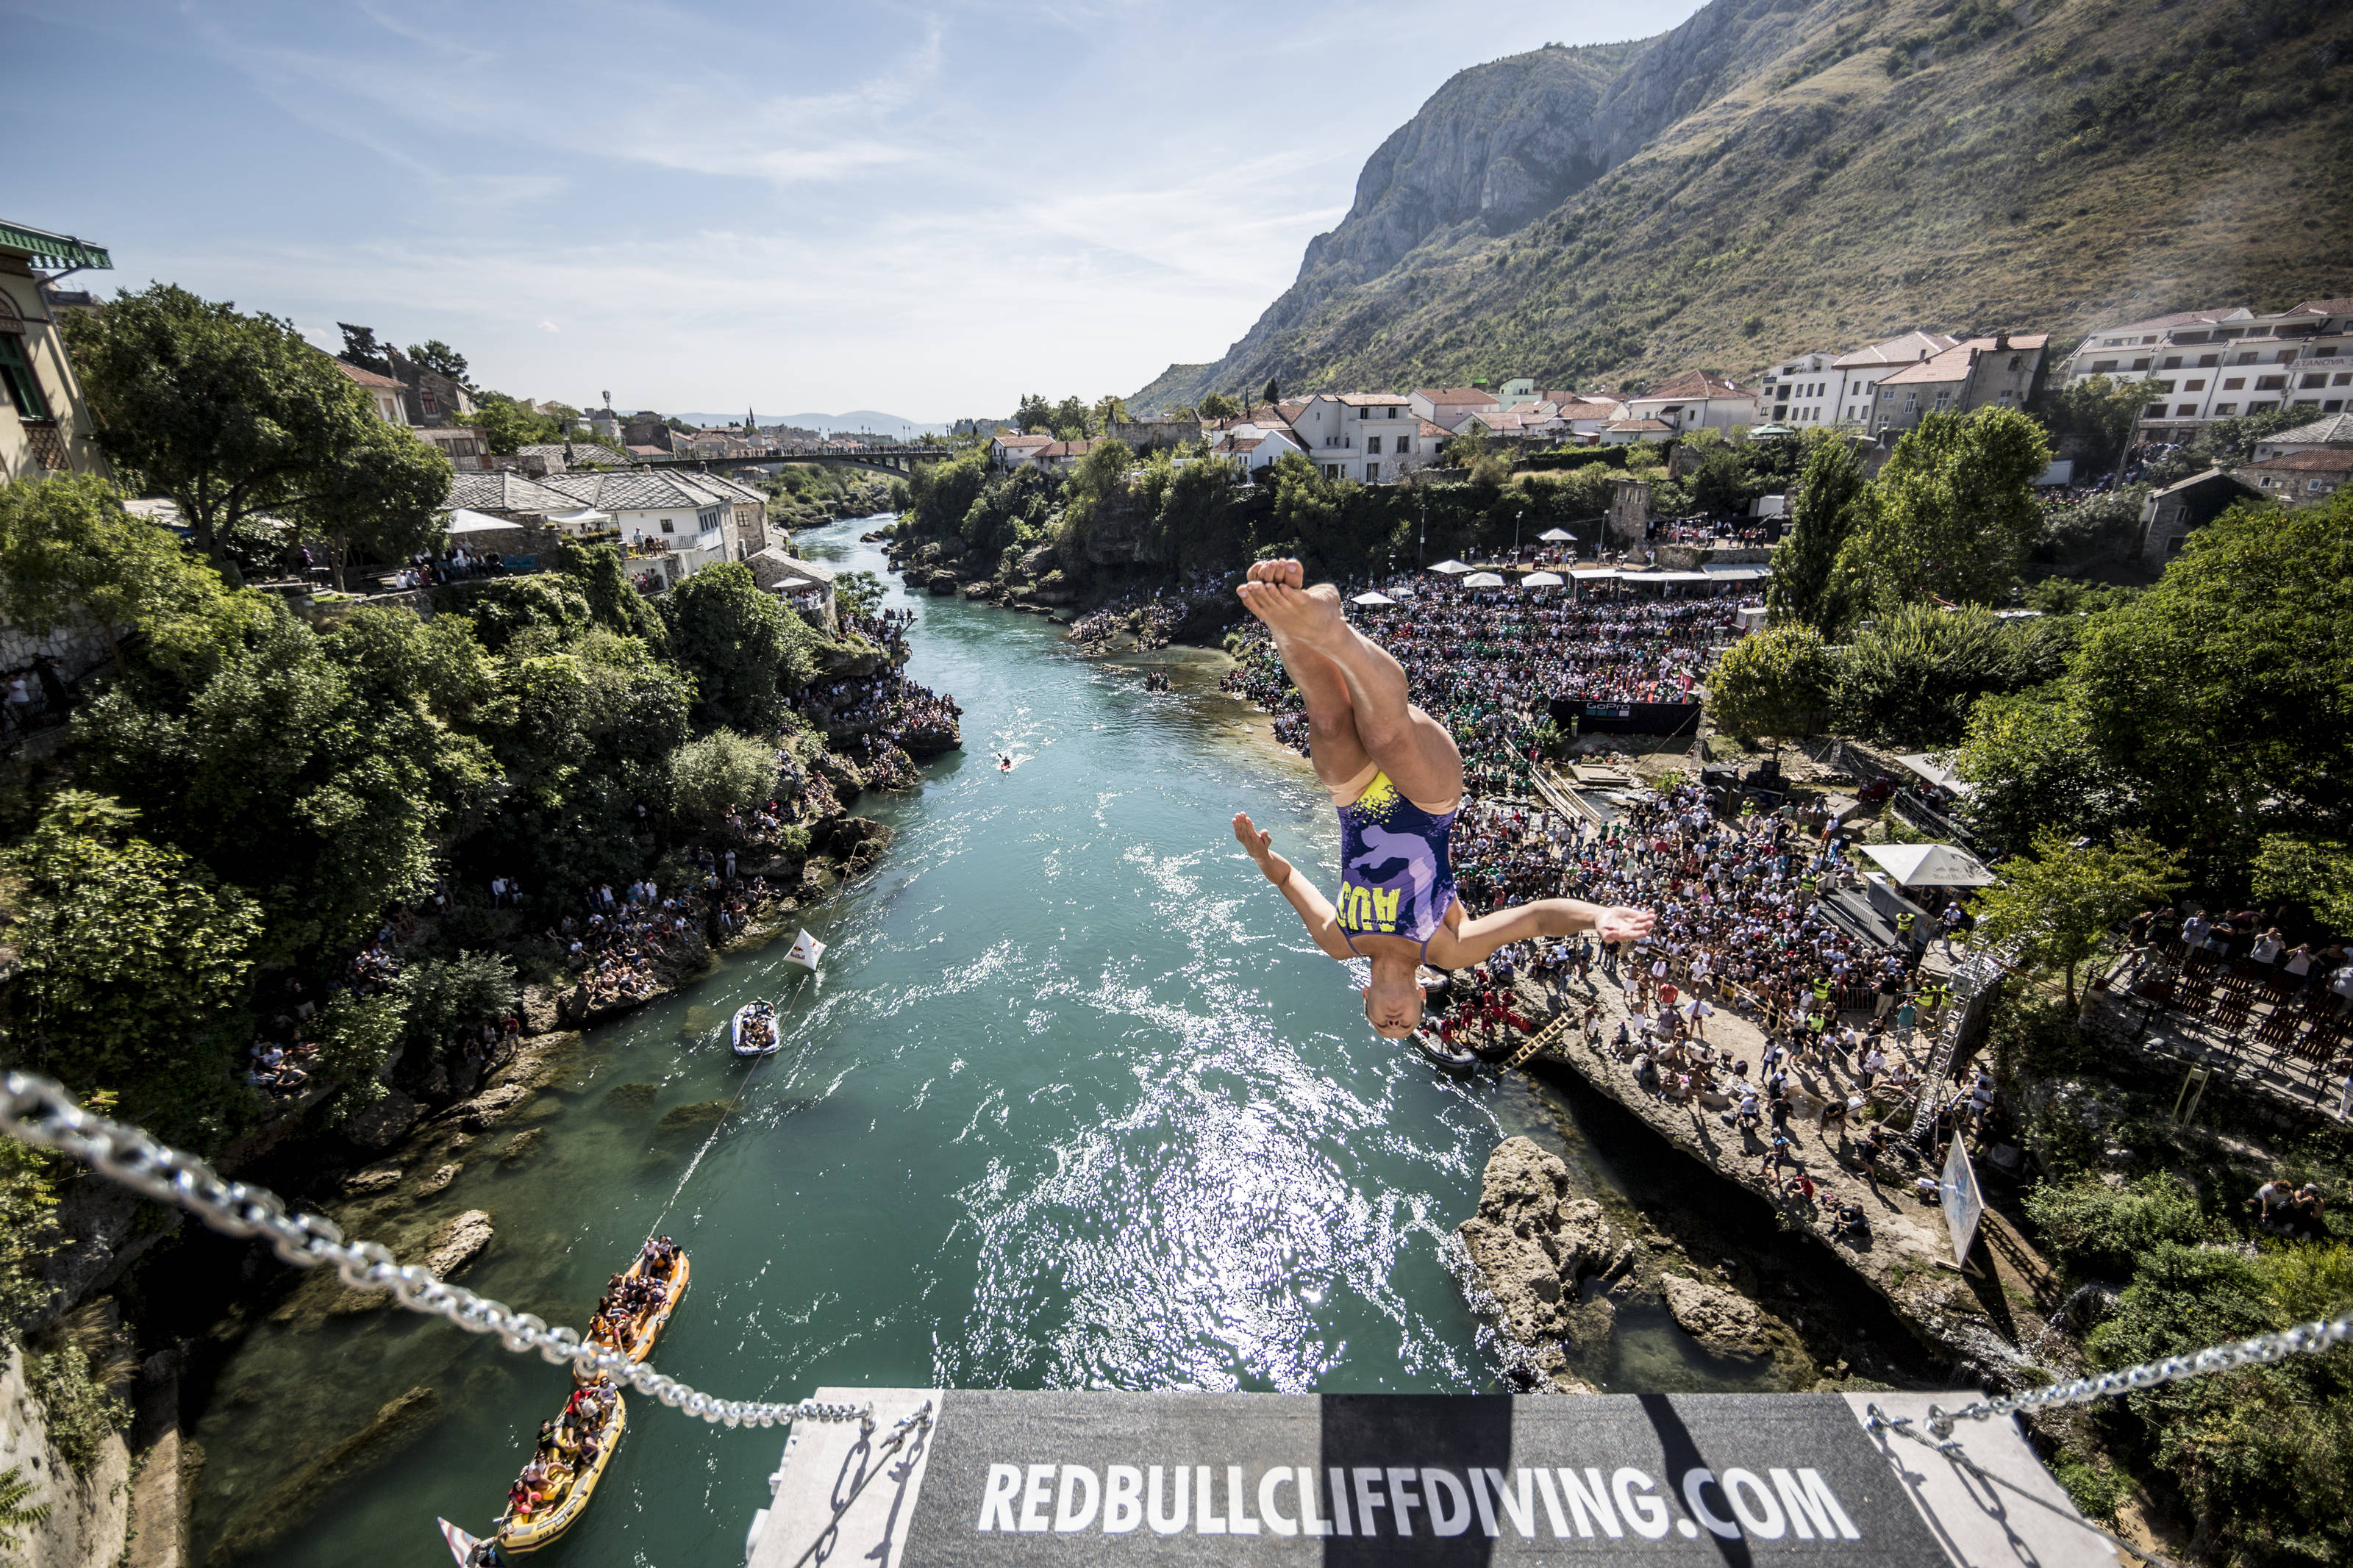 RedBull World Series: Bosnia – Grandi altezze a Mostar, una gara decisiva!